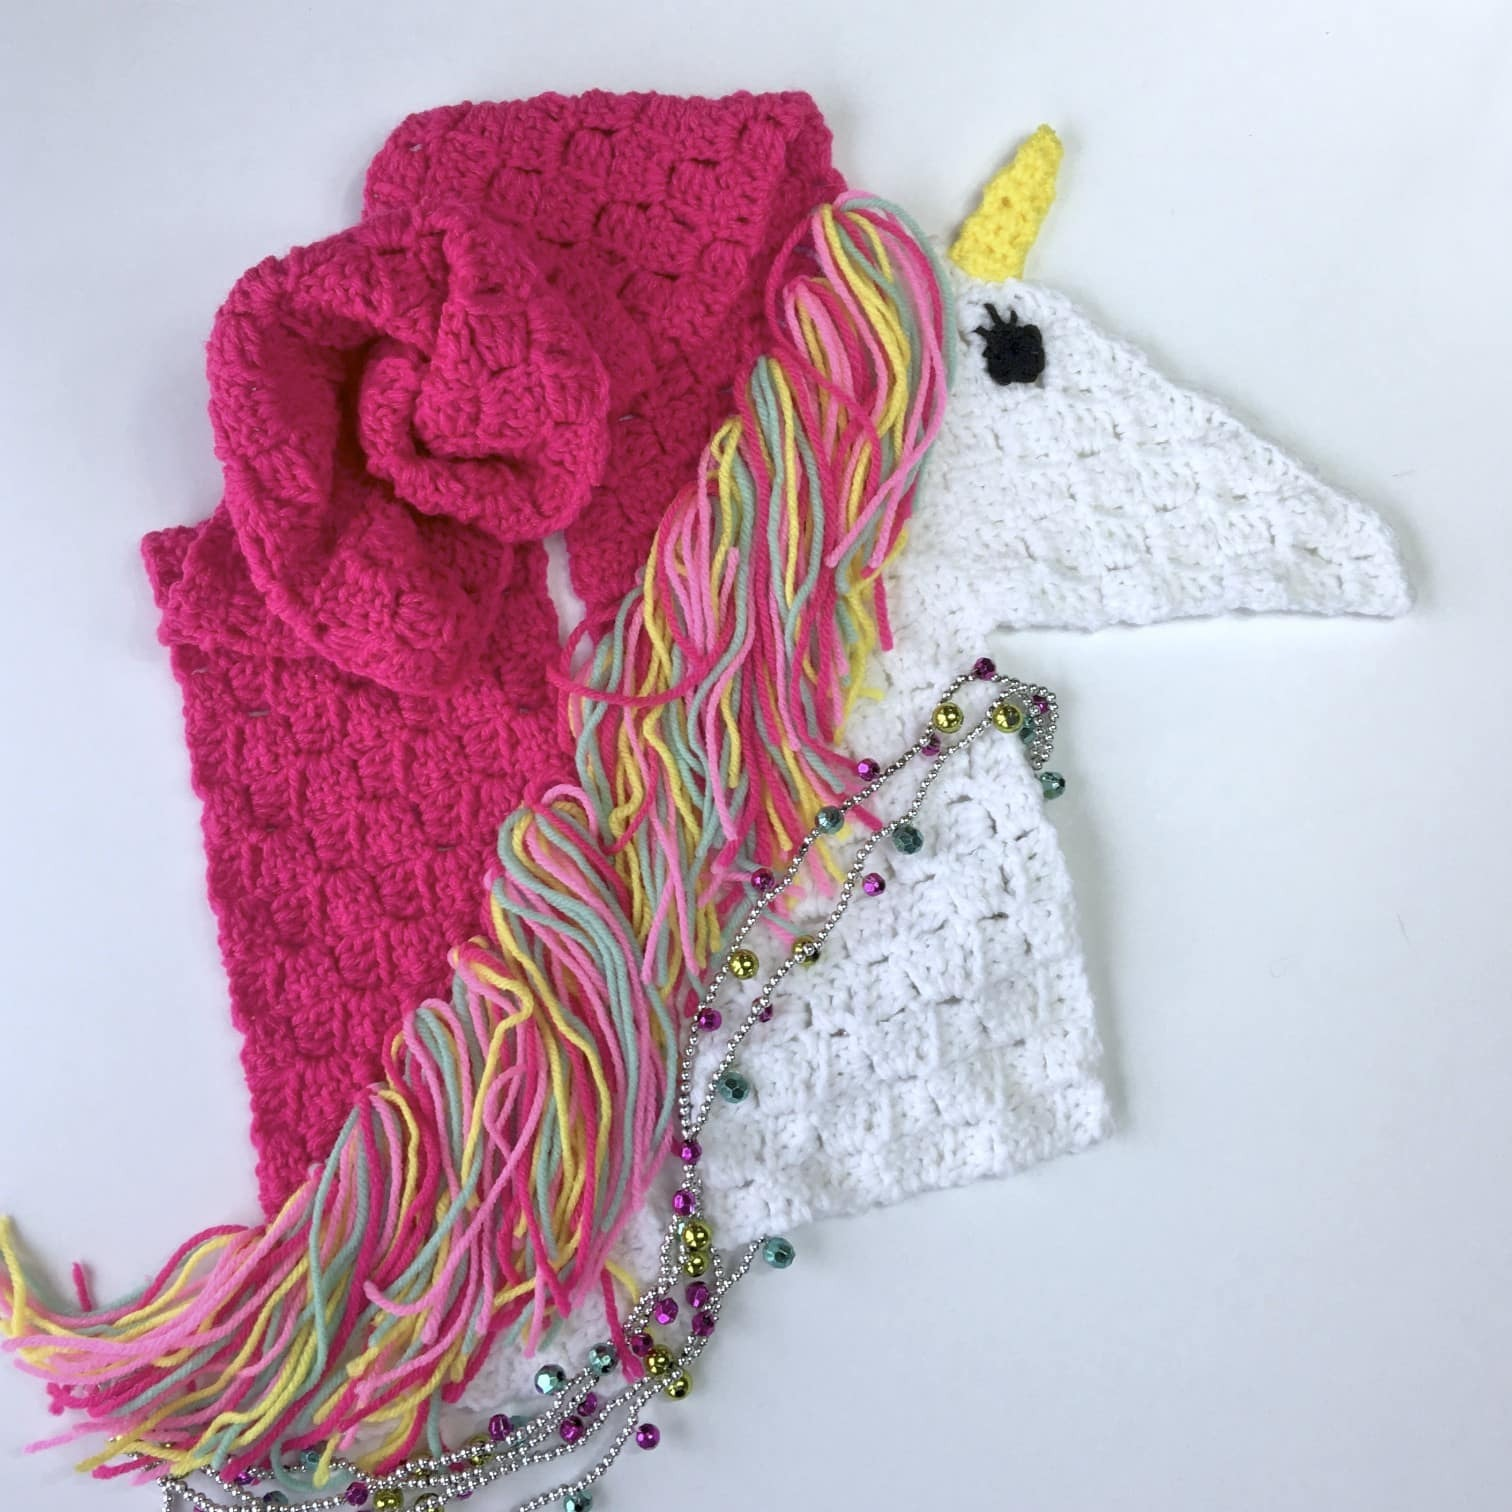 Unicorn Scarf - If you're looking to learn a new crochet skill, check out these 12 corner to corner crochet patterns. #cornertocornercrochetpatterns #C2Ccrochetpatterns #crochetpatterns